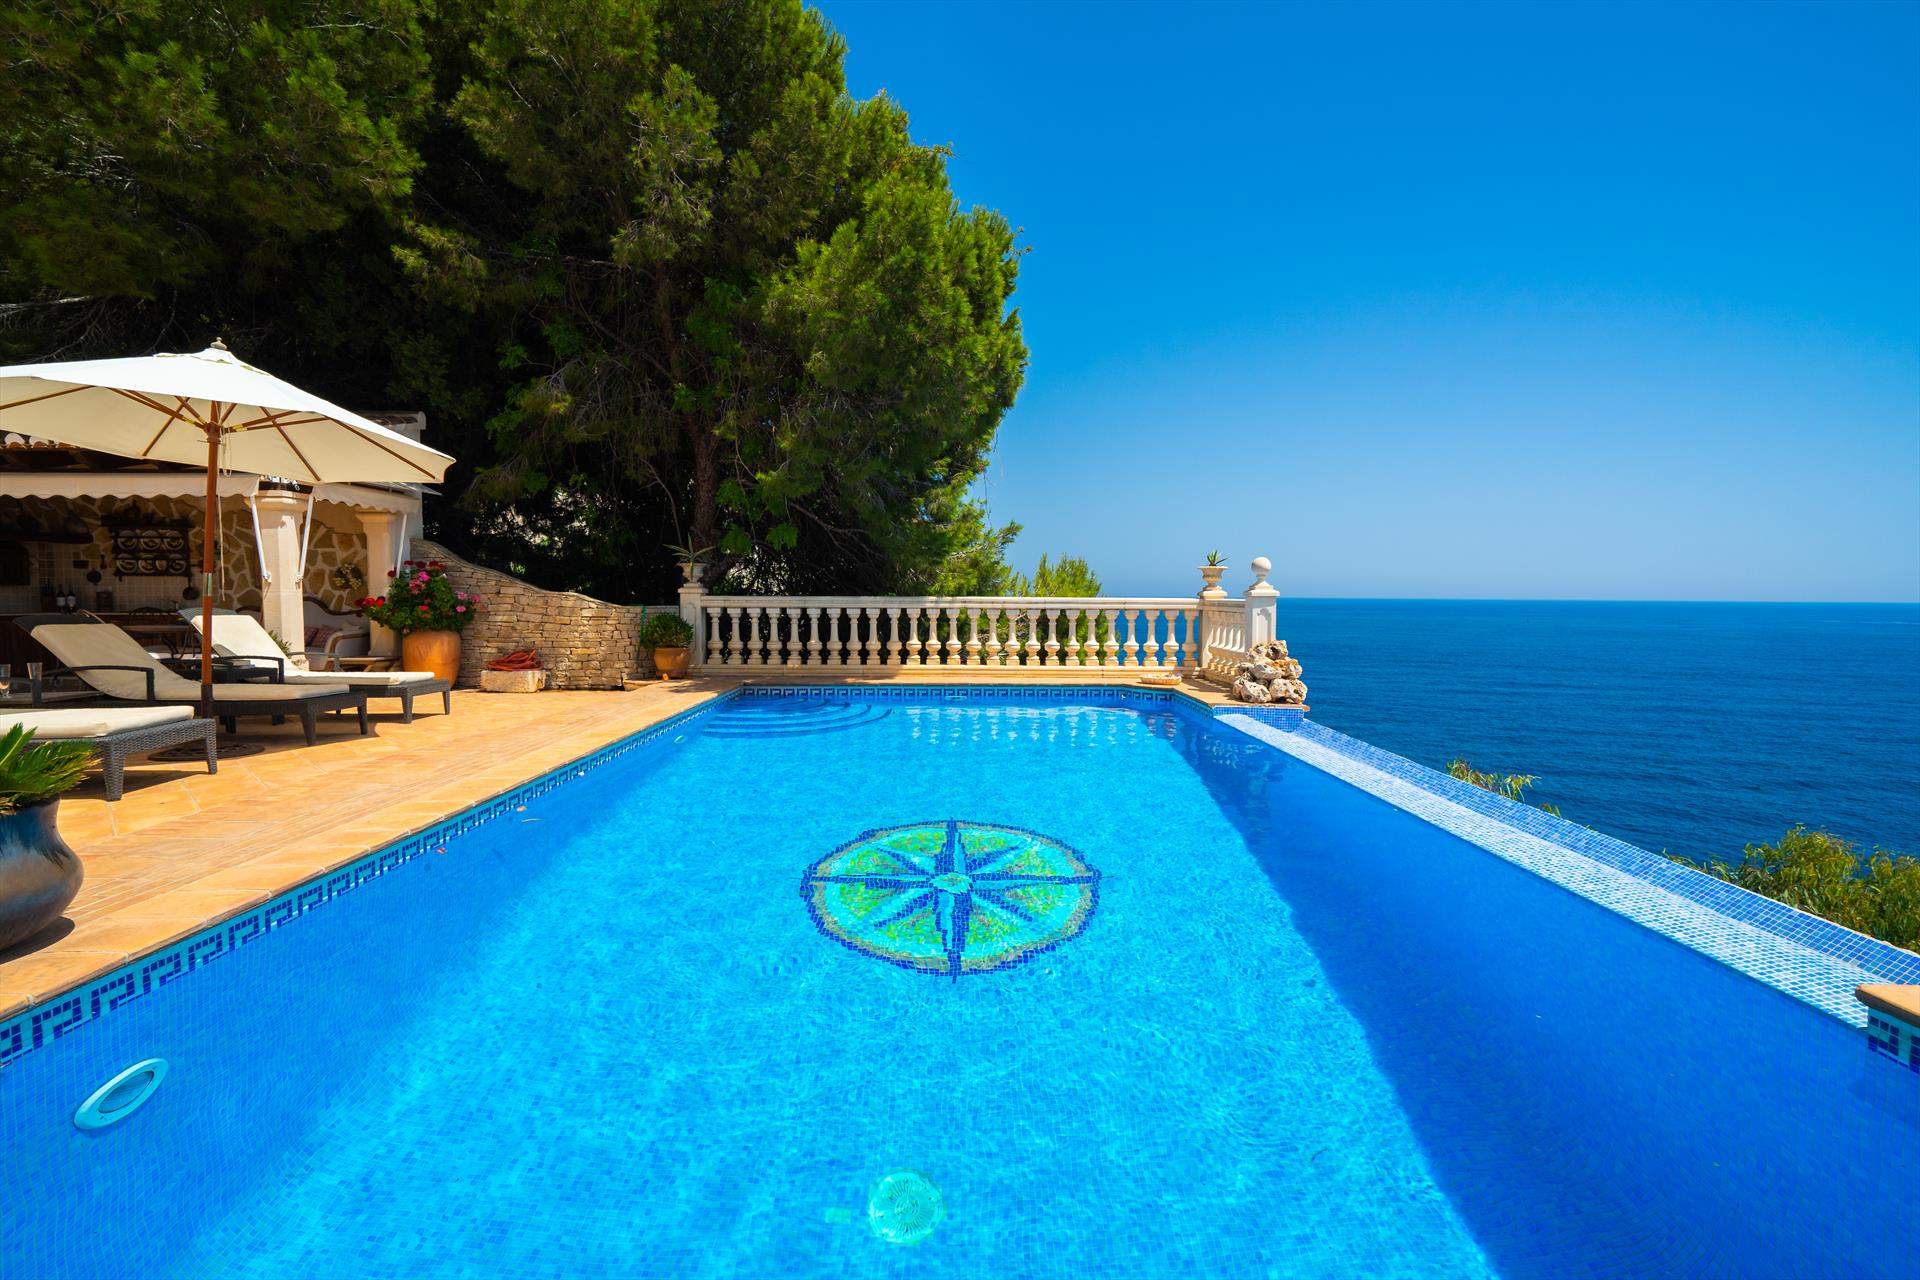 El Paraiso 8 pax, Large and classic villa  with private pool in Javea, on the Costa Blanca, Spain for 8 persons.....